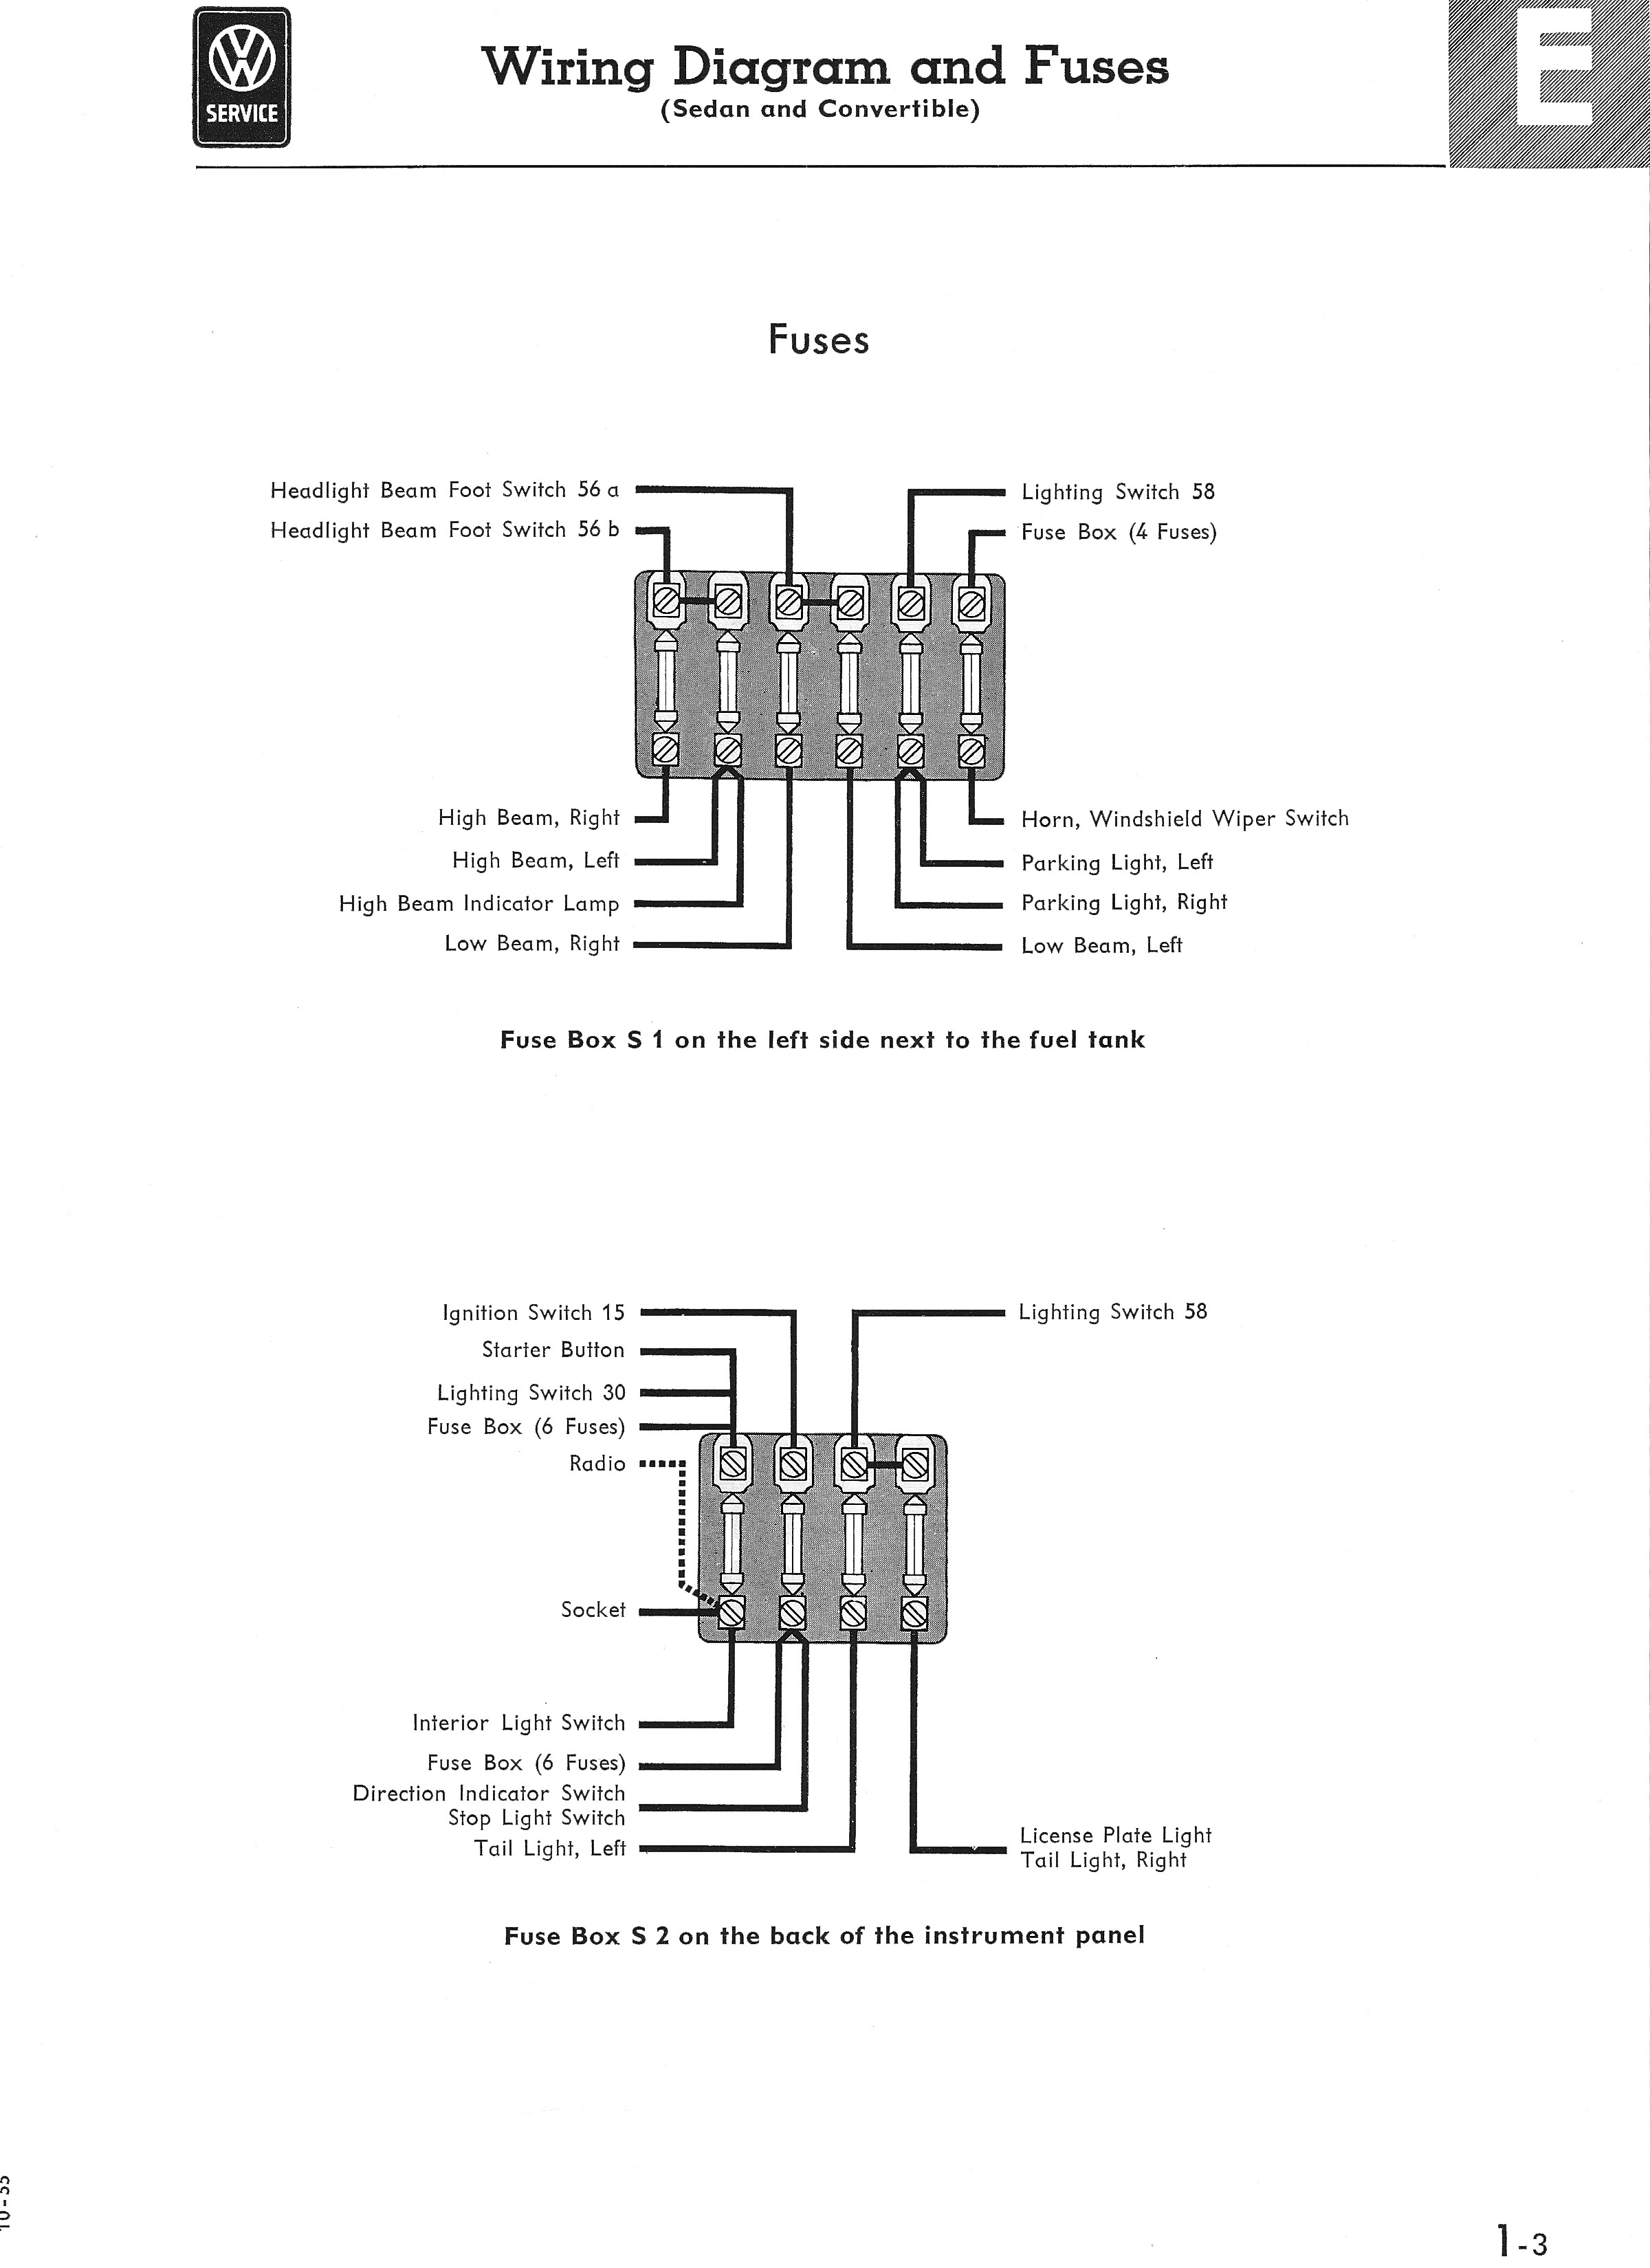 1969 Cougar Fuse Box Diagram Les Paul Special P90 Wiring Diagram For Wiring Diagram Schematics